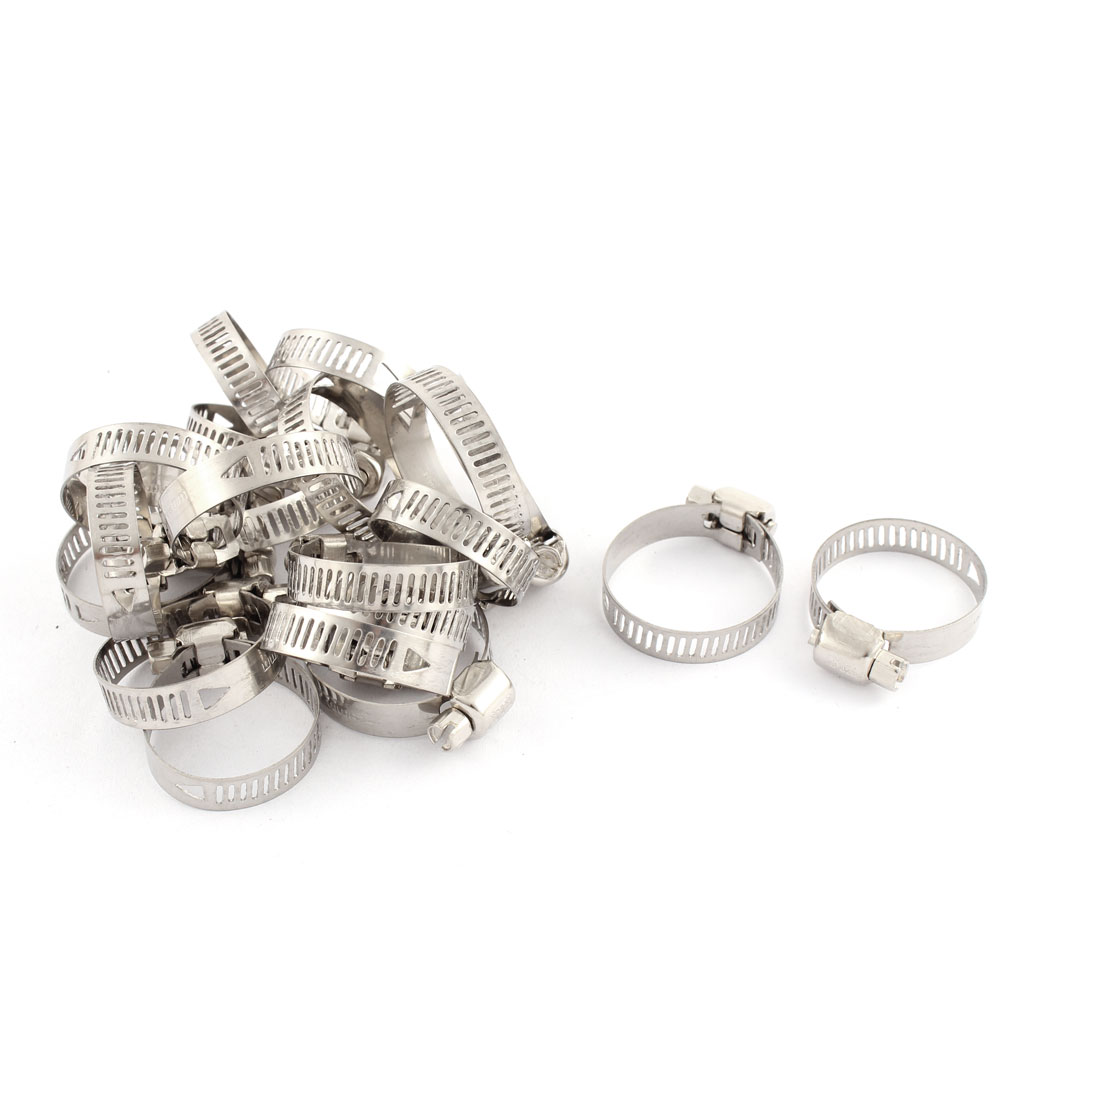 Adjustable 19-29mm Range Band Stainless Steel Wire Pipe Hose Clip Clamp 20 Pcs